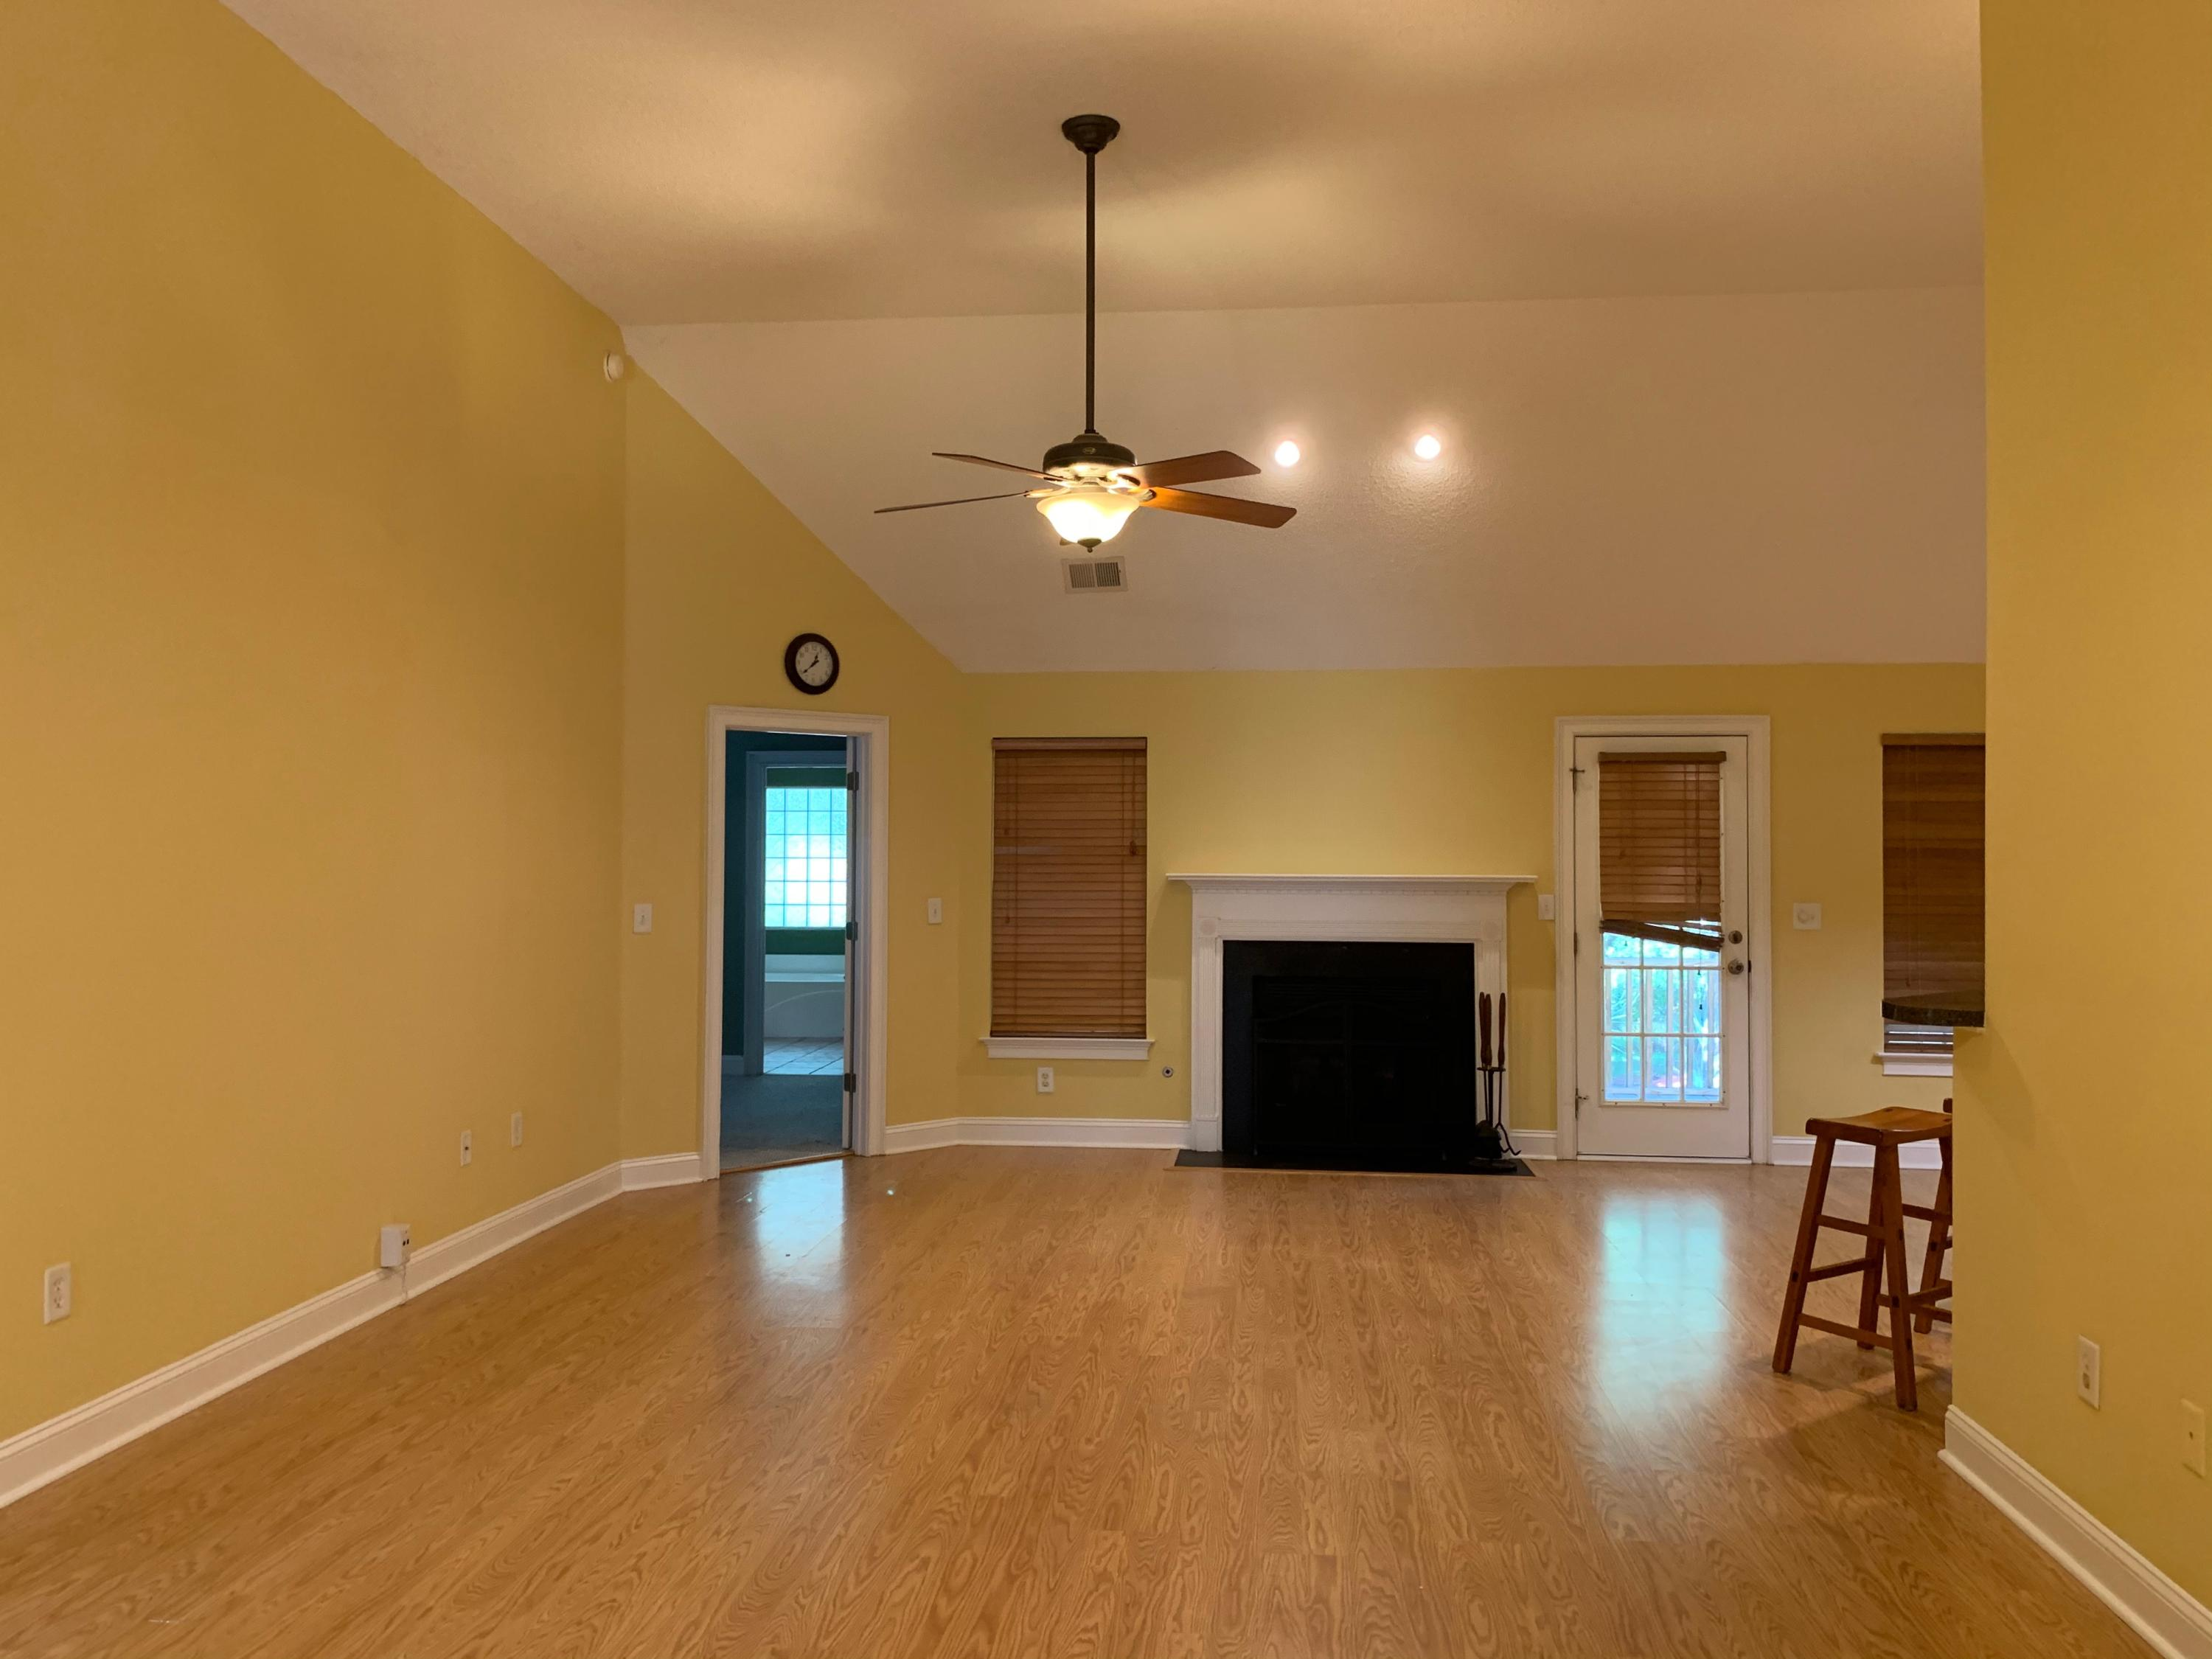 The Bend at River Road Homes For Sale - 3033 Penny, Johns Island, SC - 26